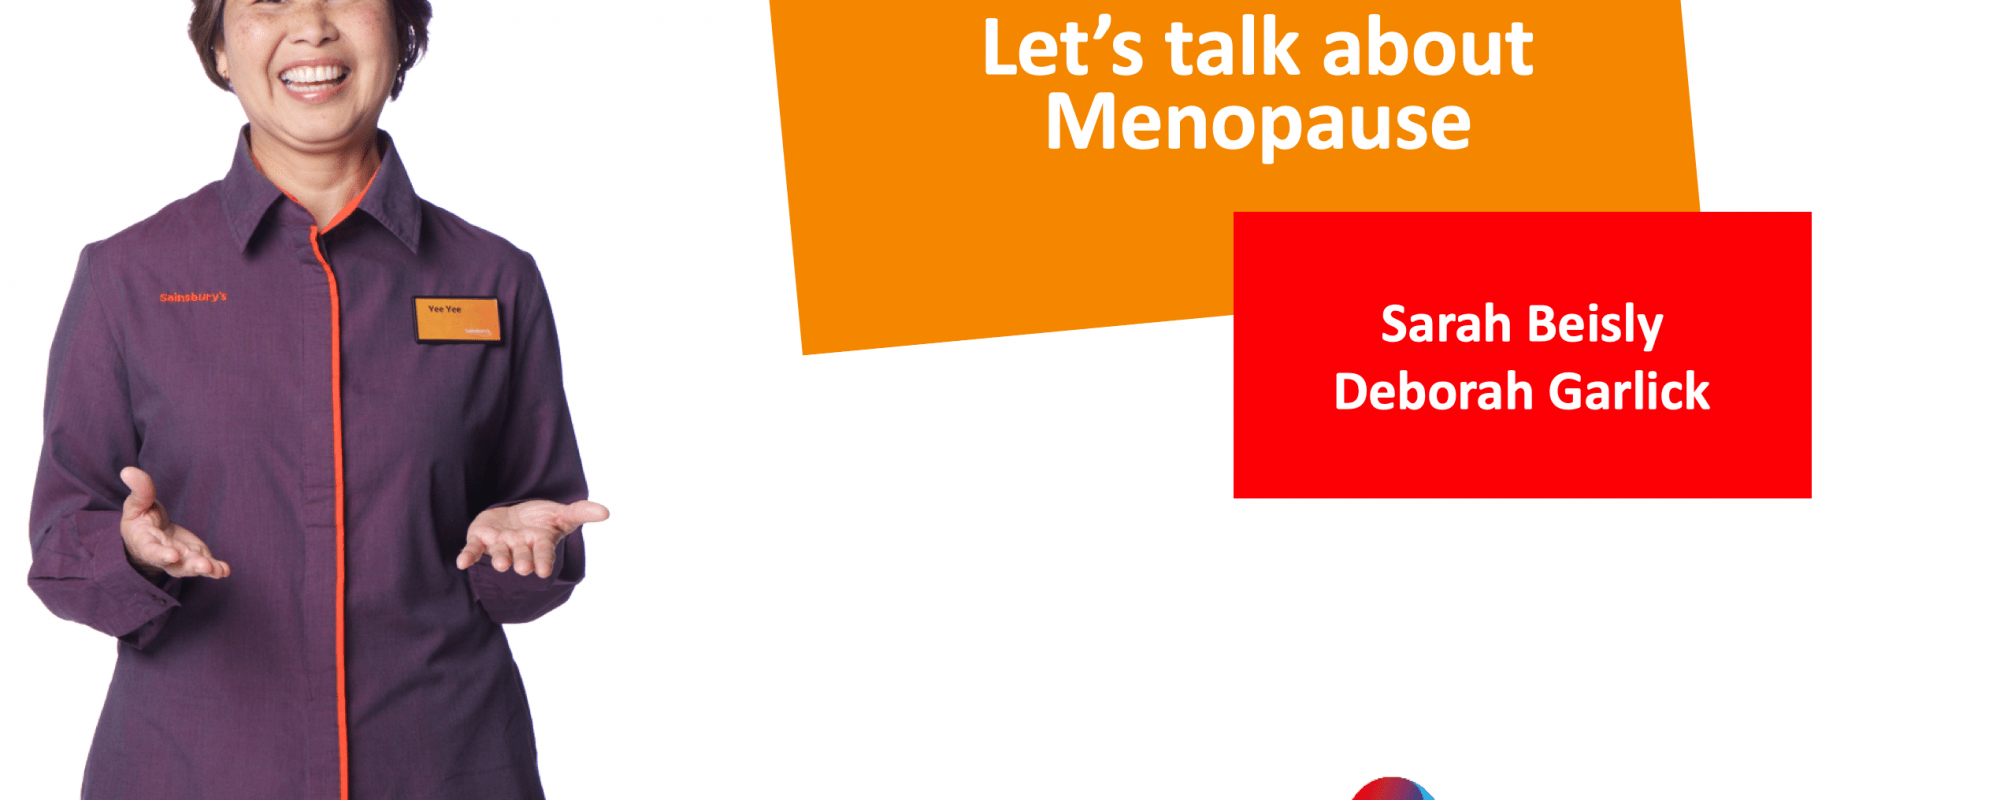 Menopause at work, menopause in the workplace, menopause